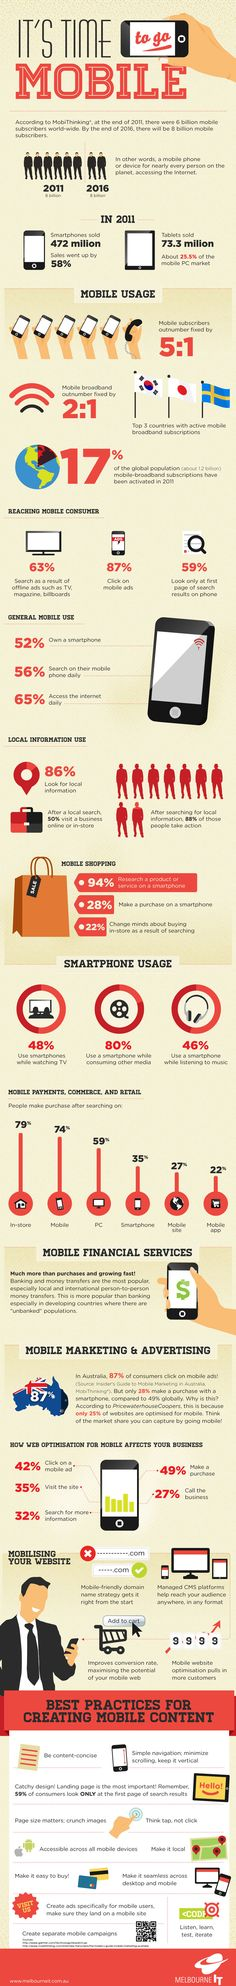 According to MobiThinking®, at the end of 2011, there were 6 billion mobile subscribers worldwide. That's 87% of the world's population!